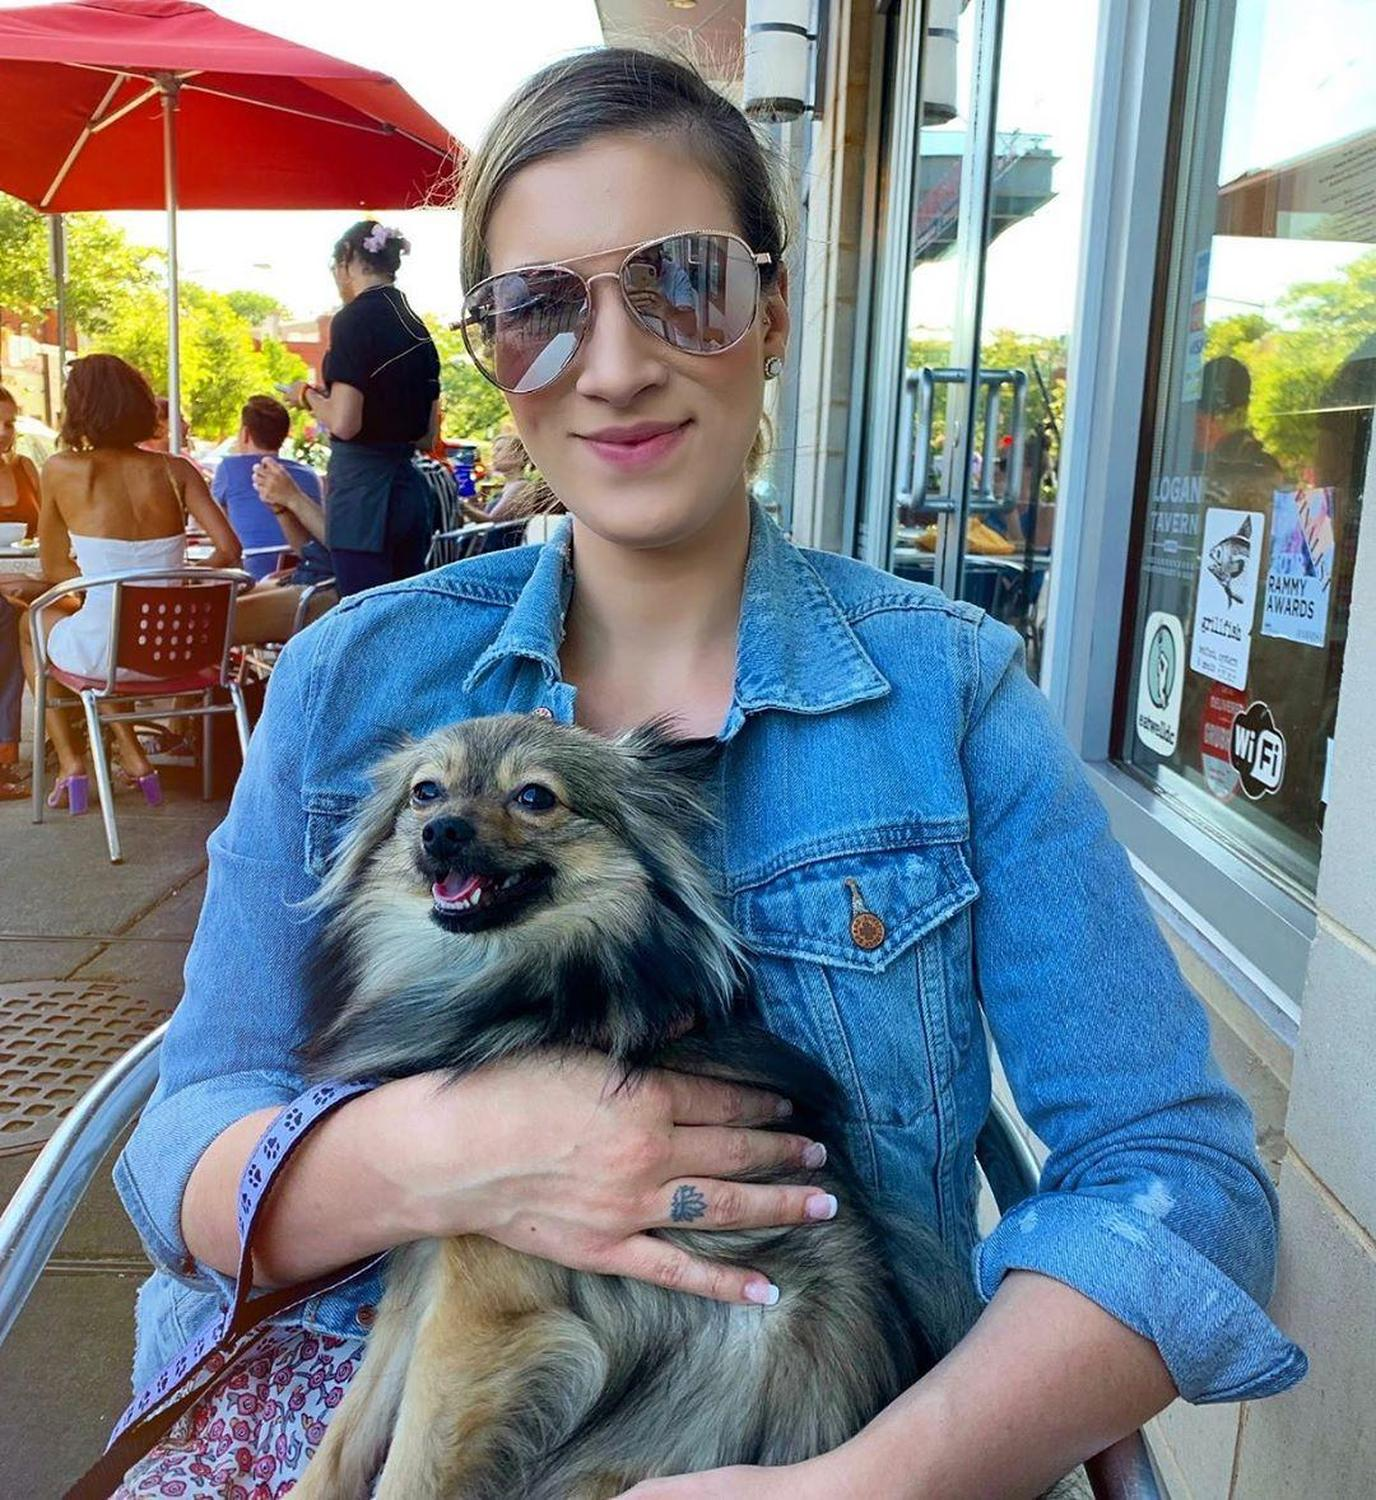 Brunch with your dog at DC pet-friendly restaurant, Commissary.